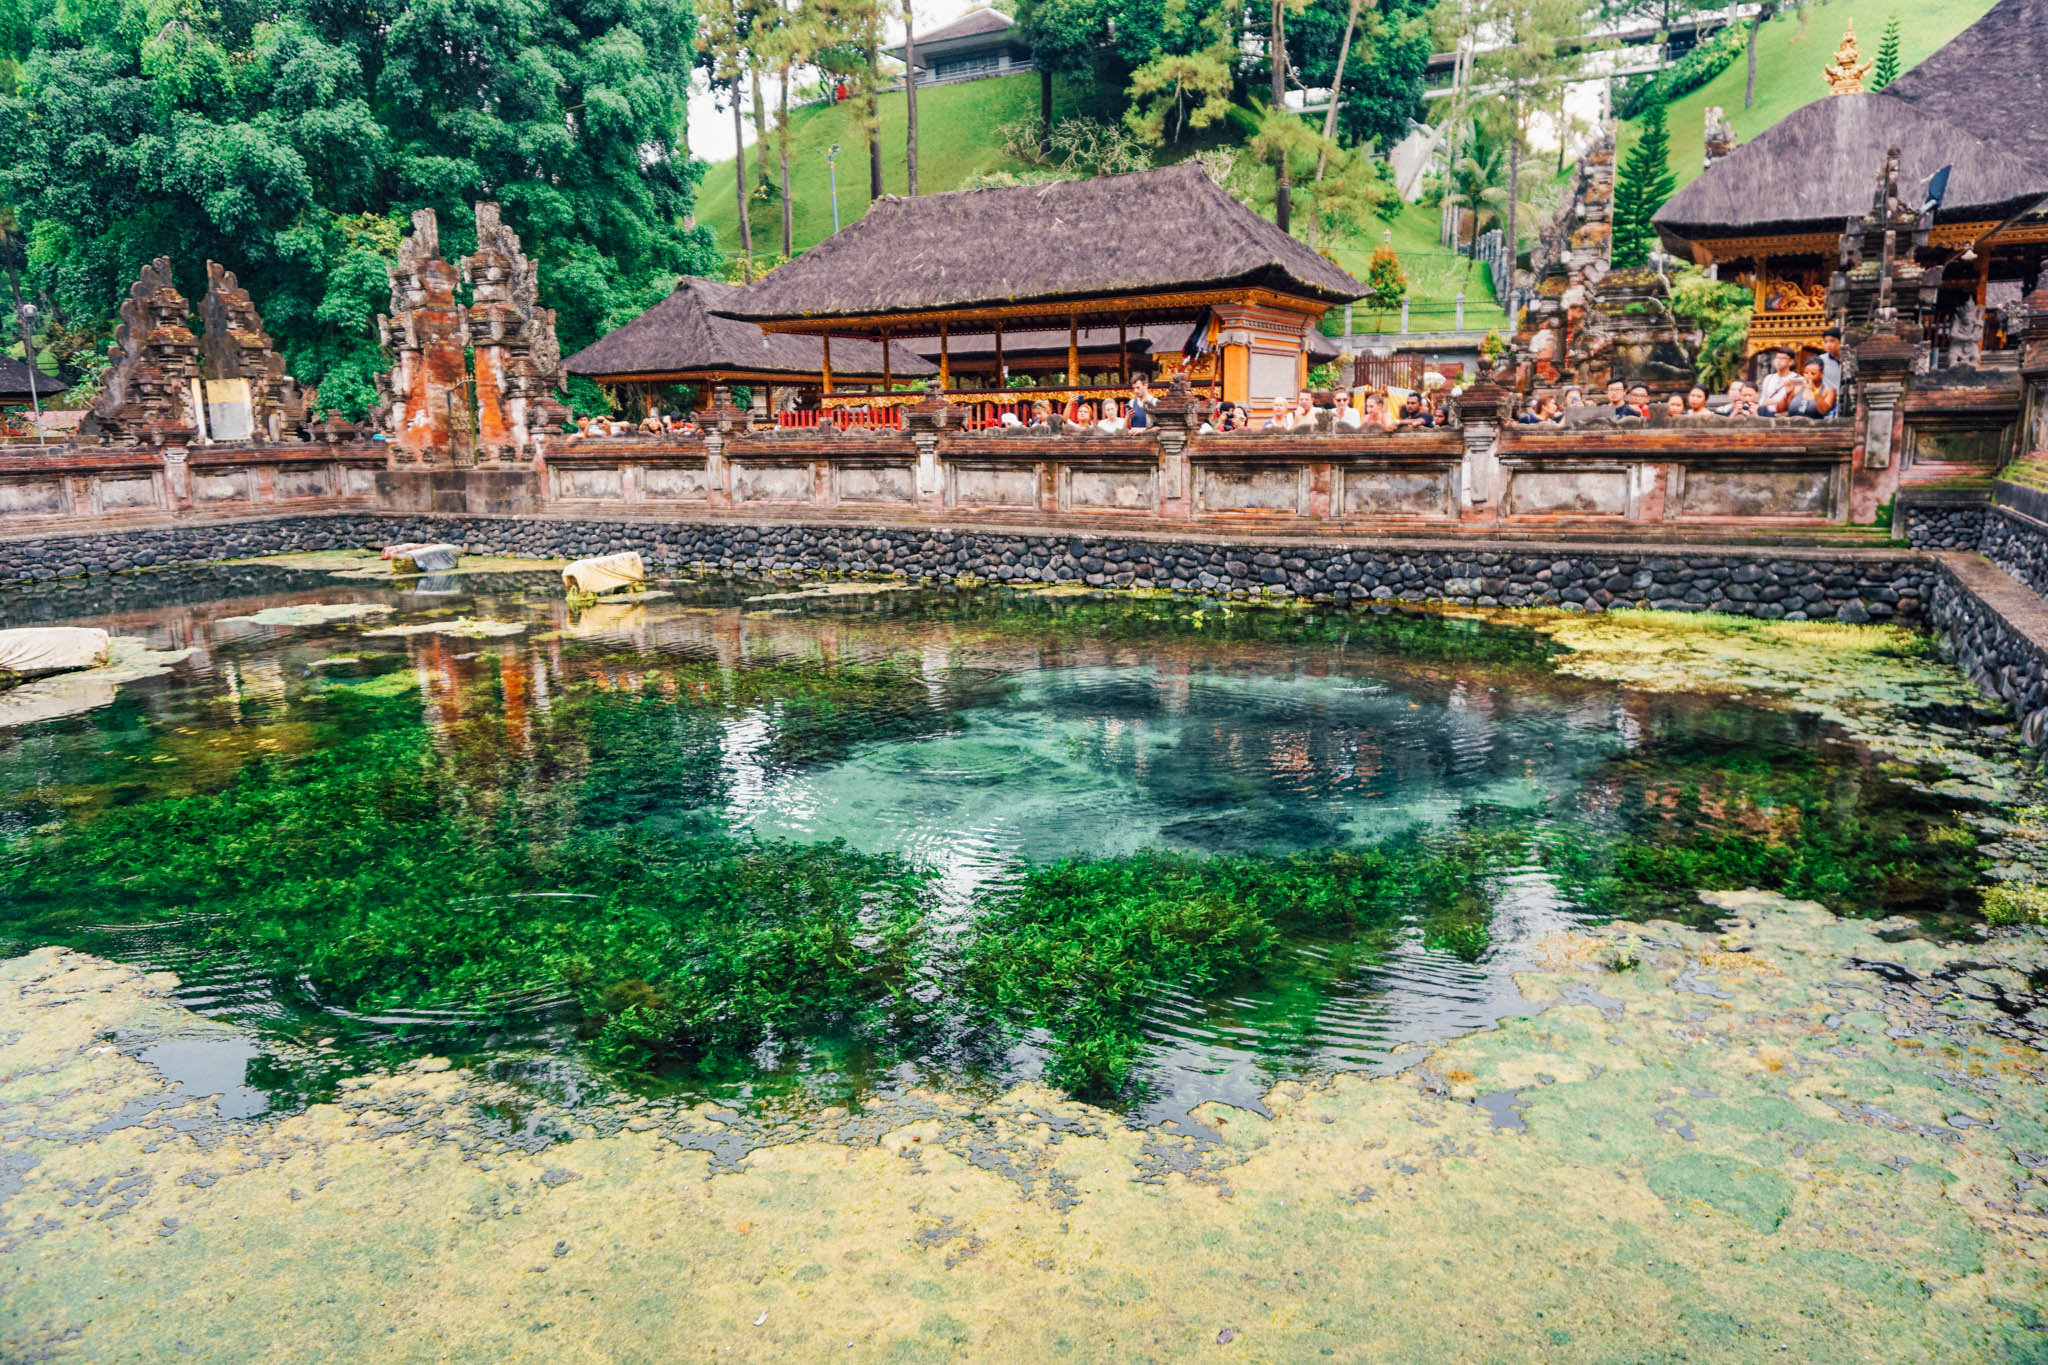 Water Spring at The Tirta Empul Holy Water Temple